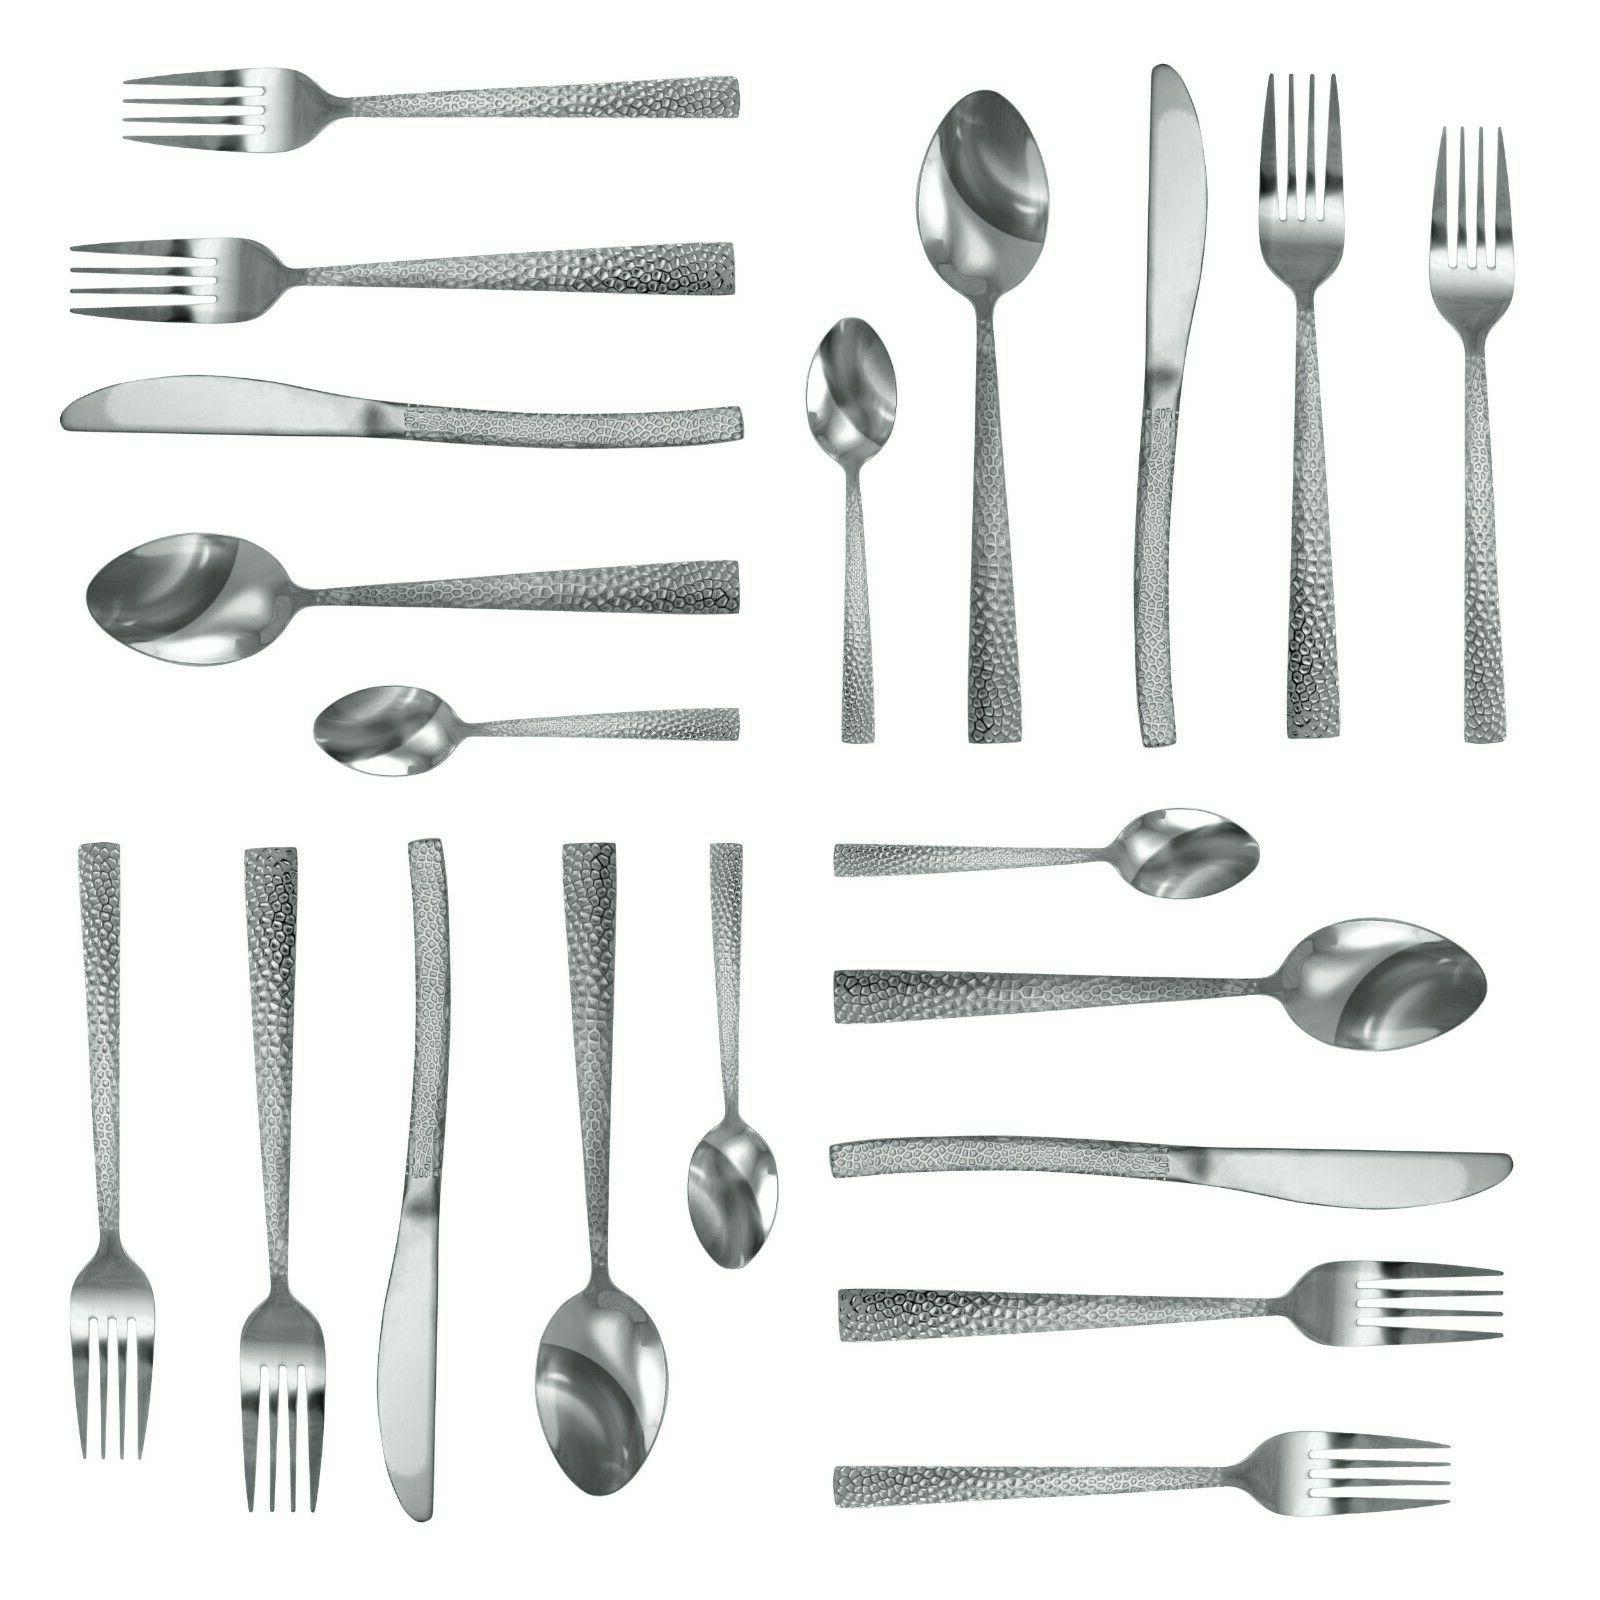 MegaChef Baily 20 Flatware Silverware, Stainless Service for 4